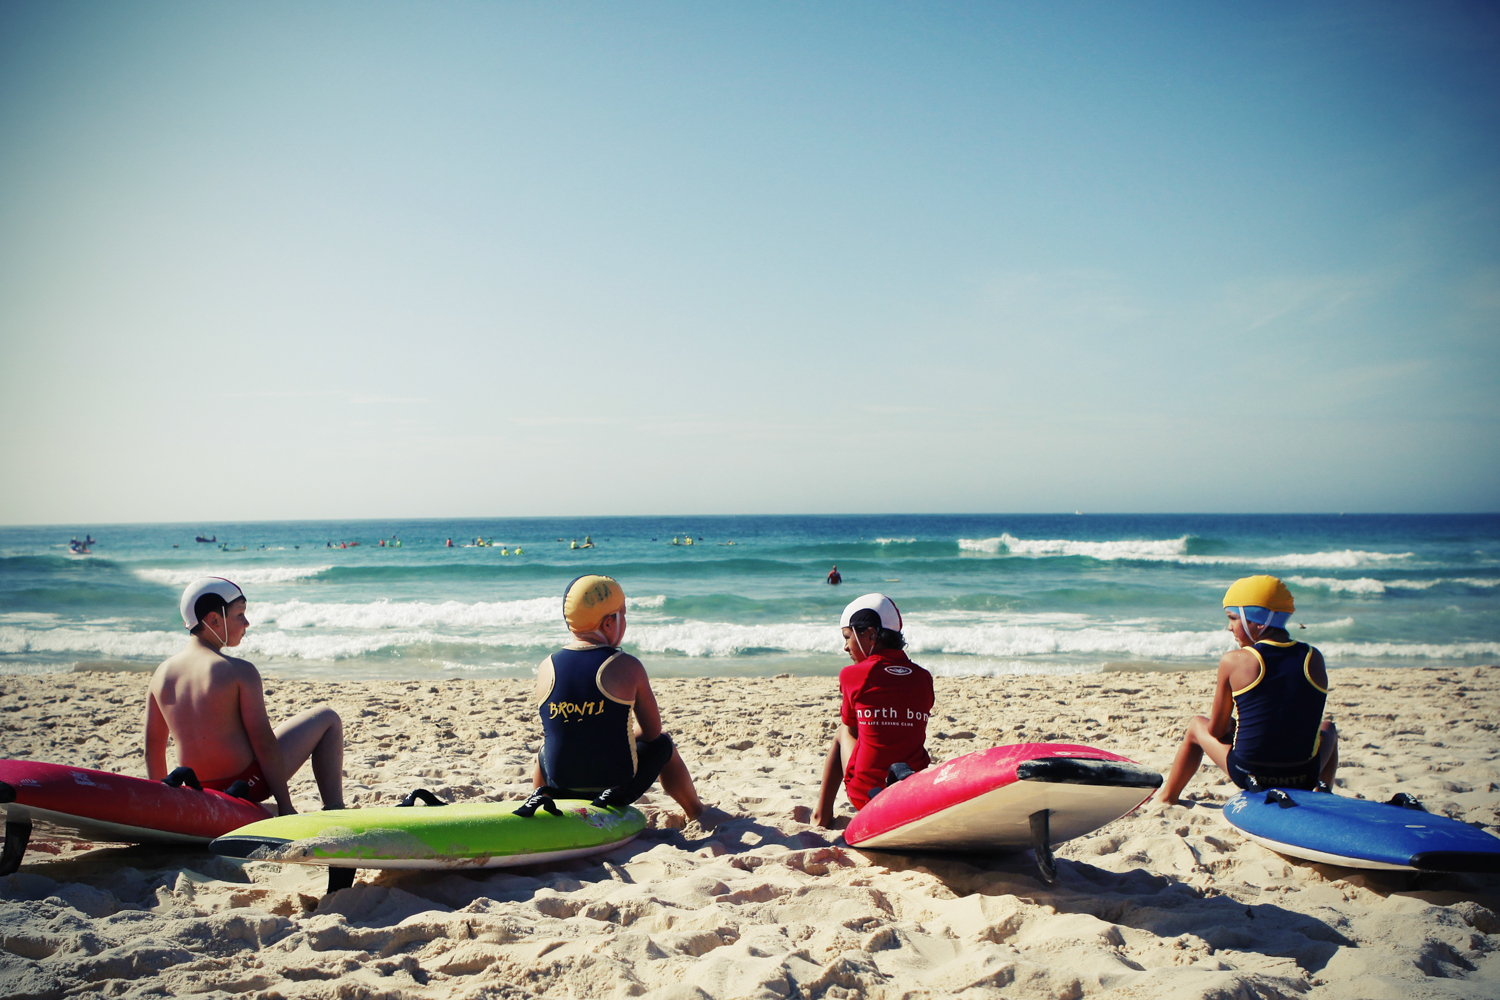 Nippers_Surf_Life_Saving_Bondi_Beach.02.jpeg